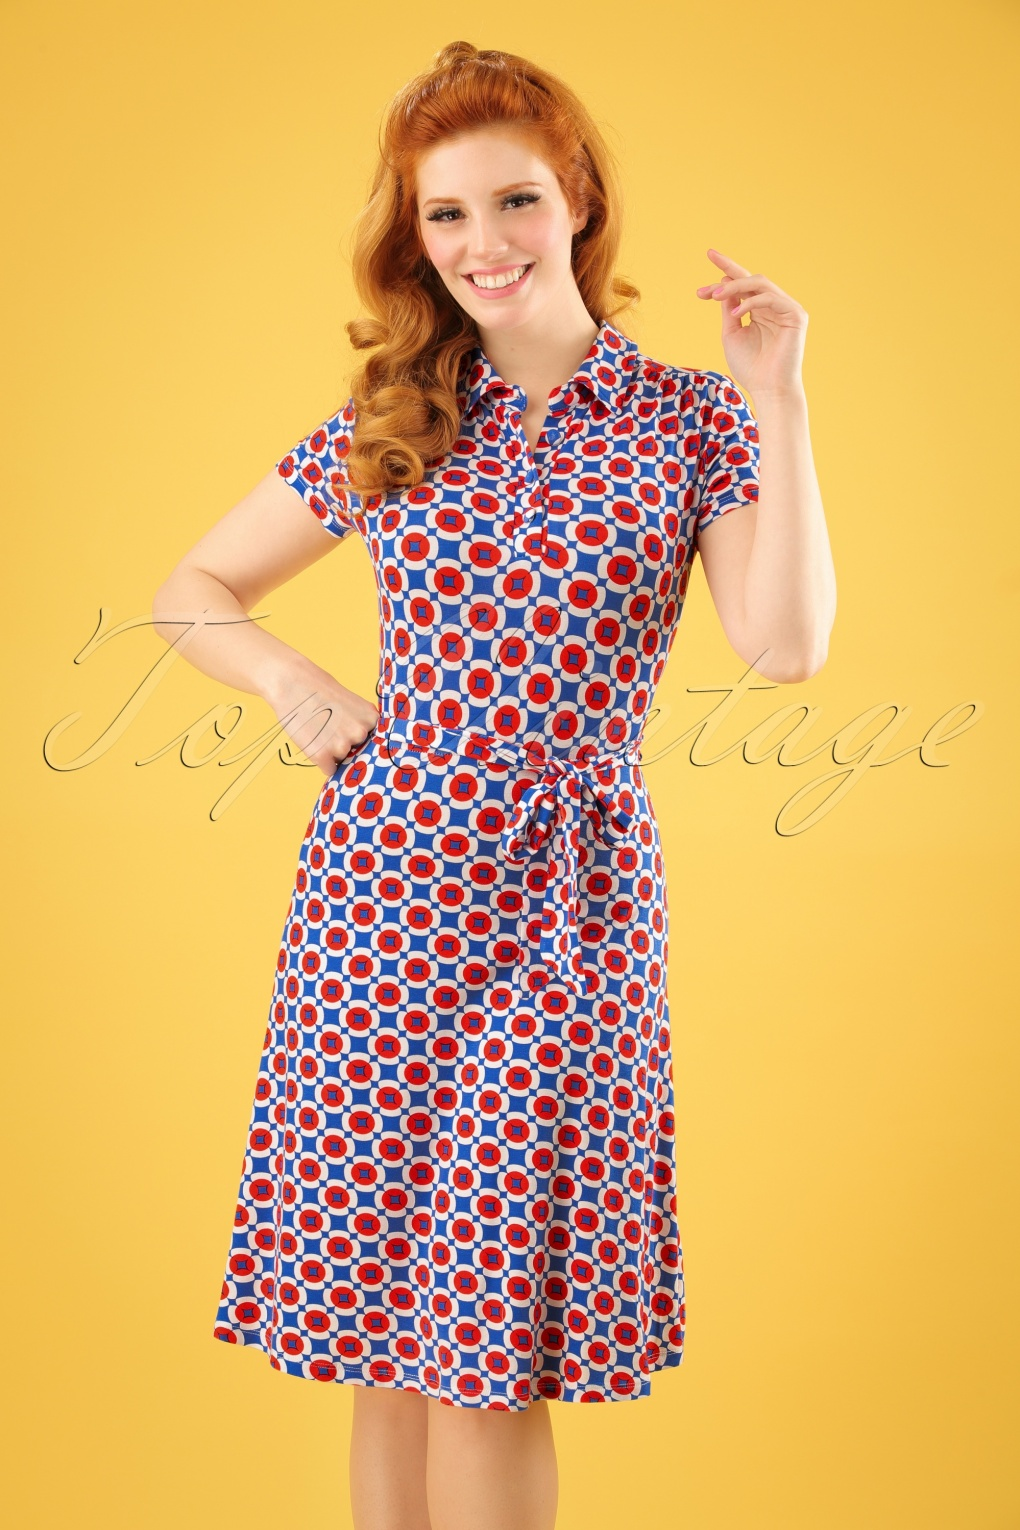 500 Vintage Style Dresses for Sale 60s Becky Swing Dress in Blue and Red £60.48 AT vintagedancer.com